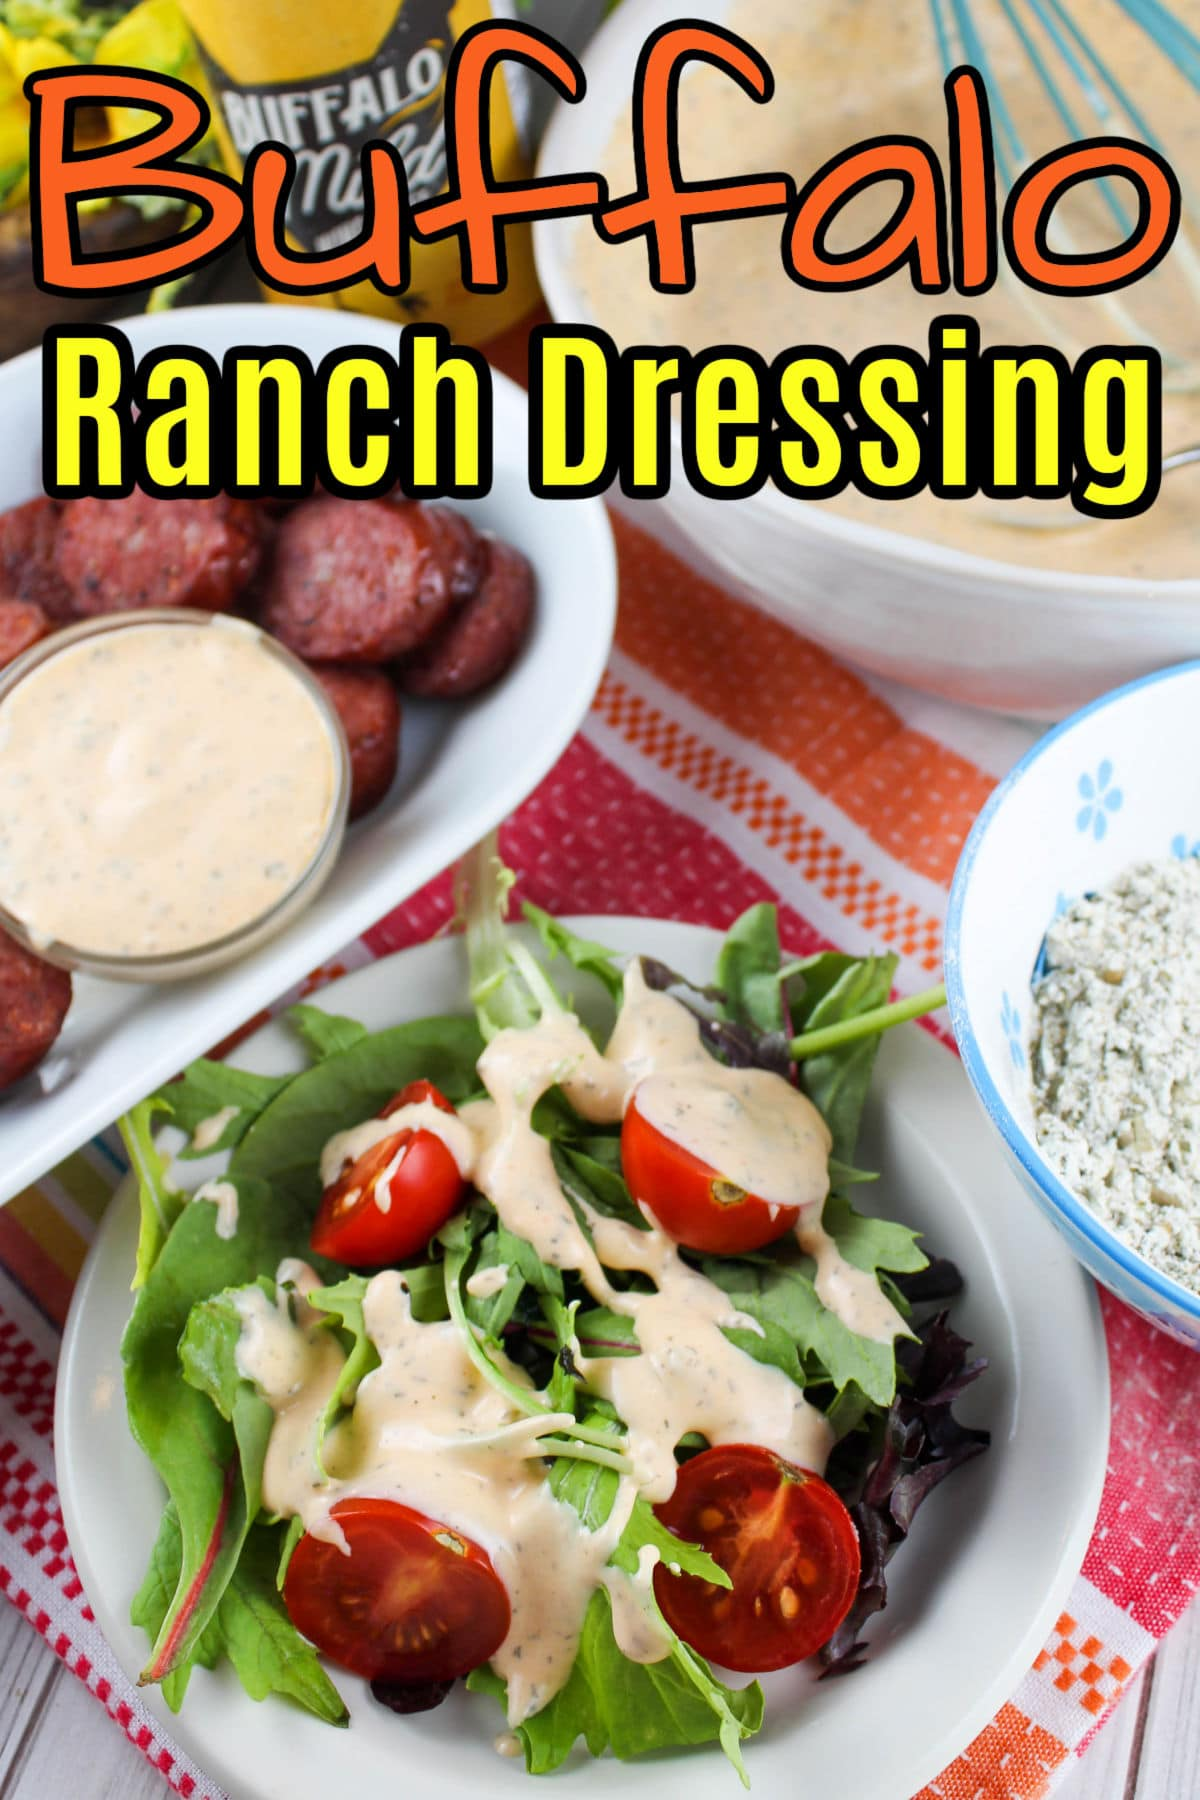 This Buffalo Ranch Dressing is my new favorite dressing! It's got the zing of ranch and the zip of Buffalo. Plus - it makes enough seasoning so you can make more delicious ranch dressing (with or without the Buffalo) later.  via @foodhussy